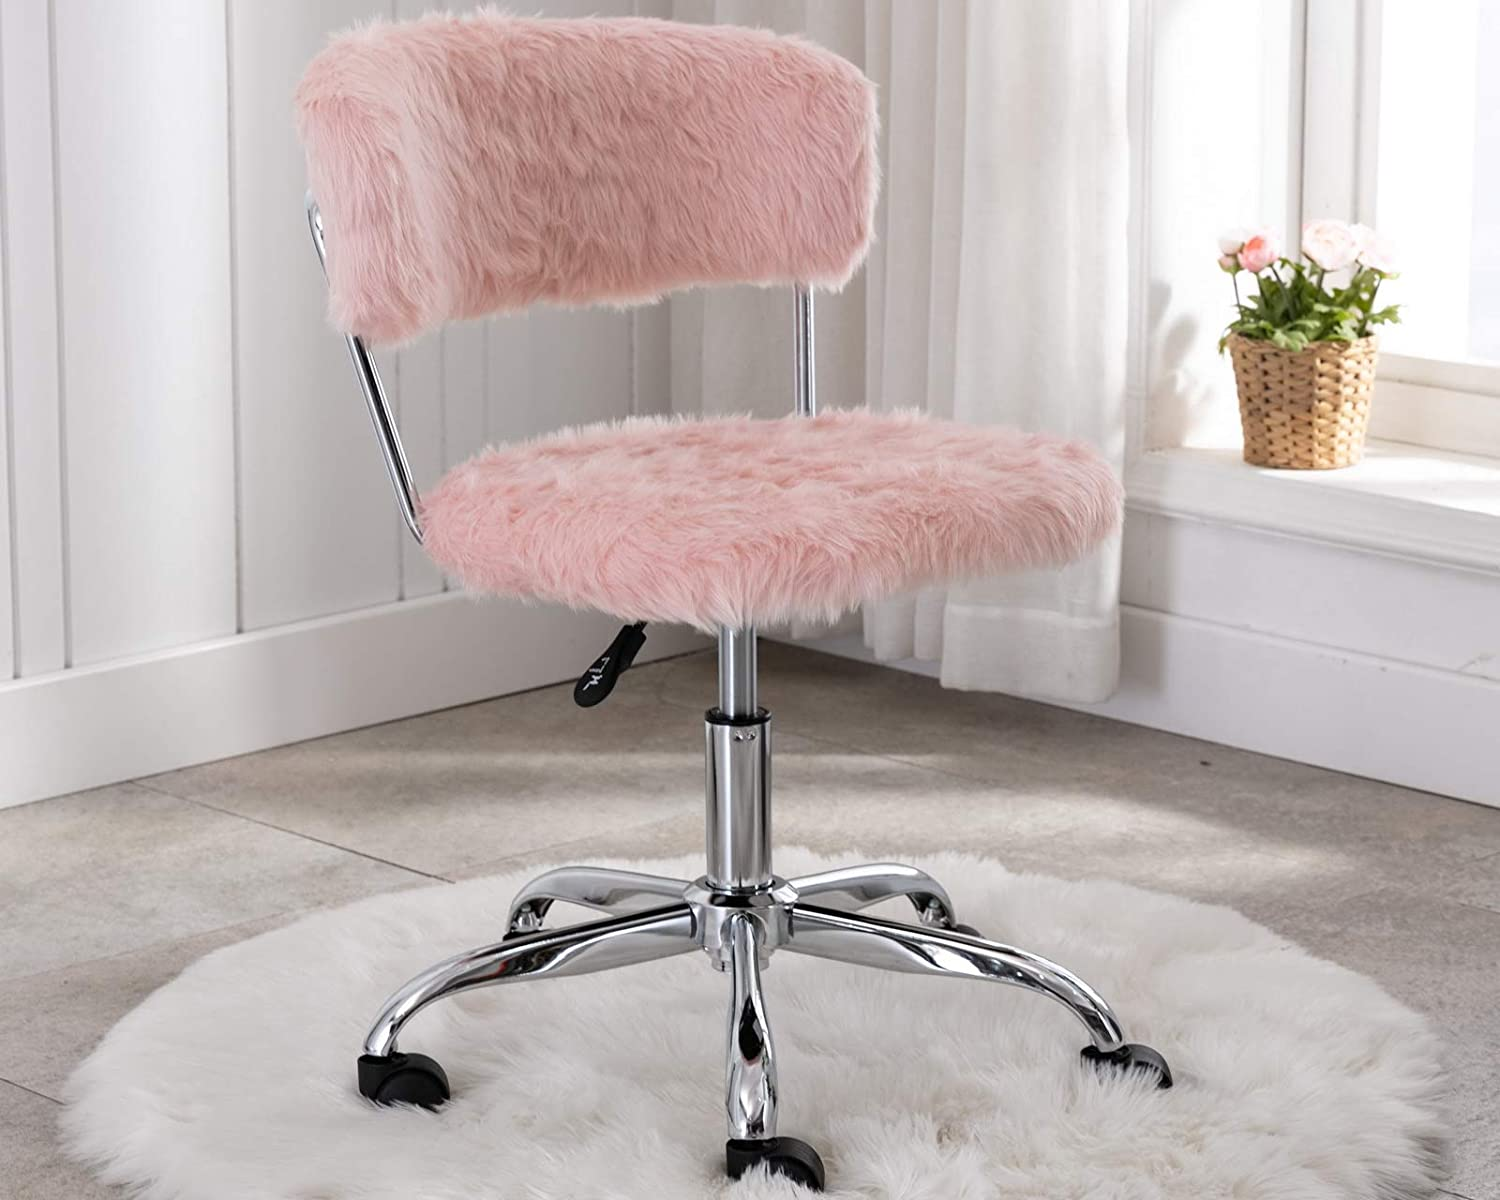 CIMOTA Pink Home Office Chair Cute Fluffy Vanity Chair with Back Task Upholstered Fur Armless Swivel Desk Chair for Study Room, Height Adjustable